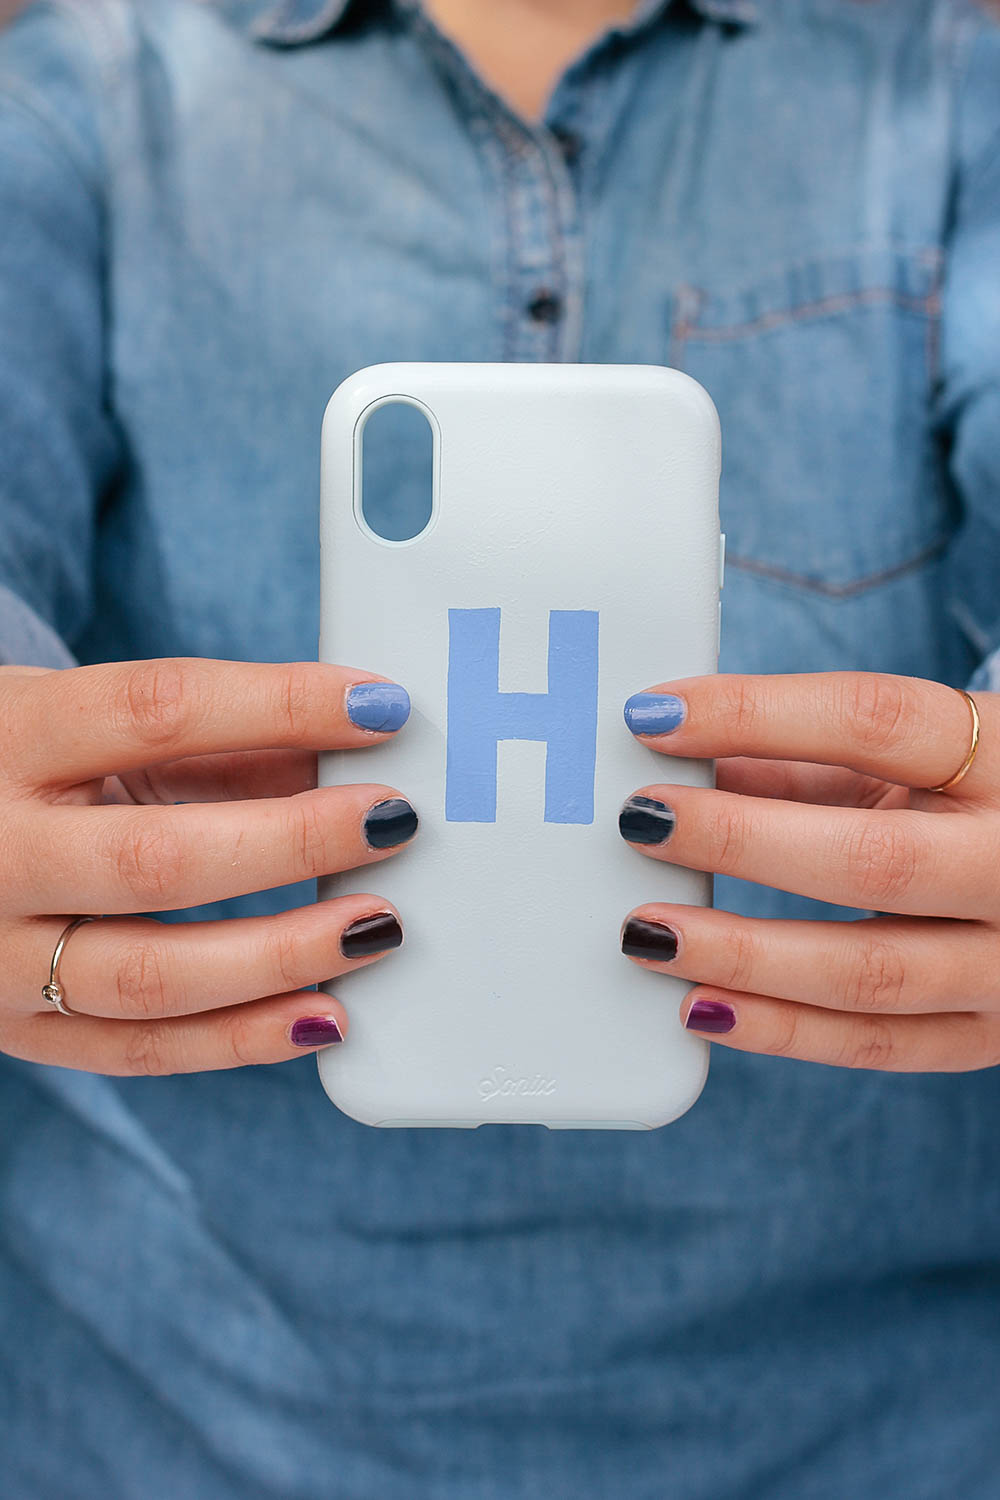 Personalize your phone with a designer-inspired case hand painted with a pretty monogram. Get the full tutorial at HomemadeBanana.com #craft #diy #phonecase #monogram